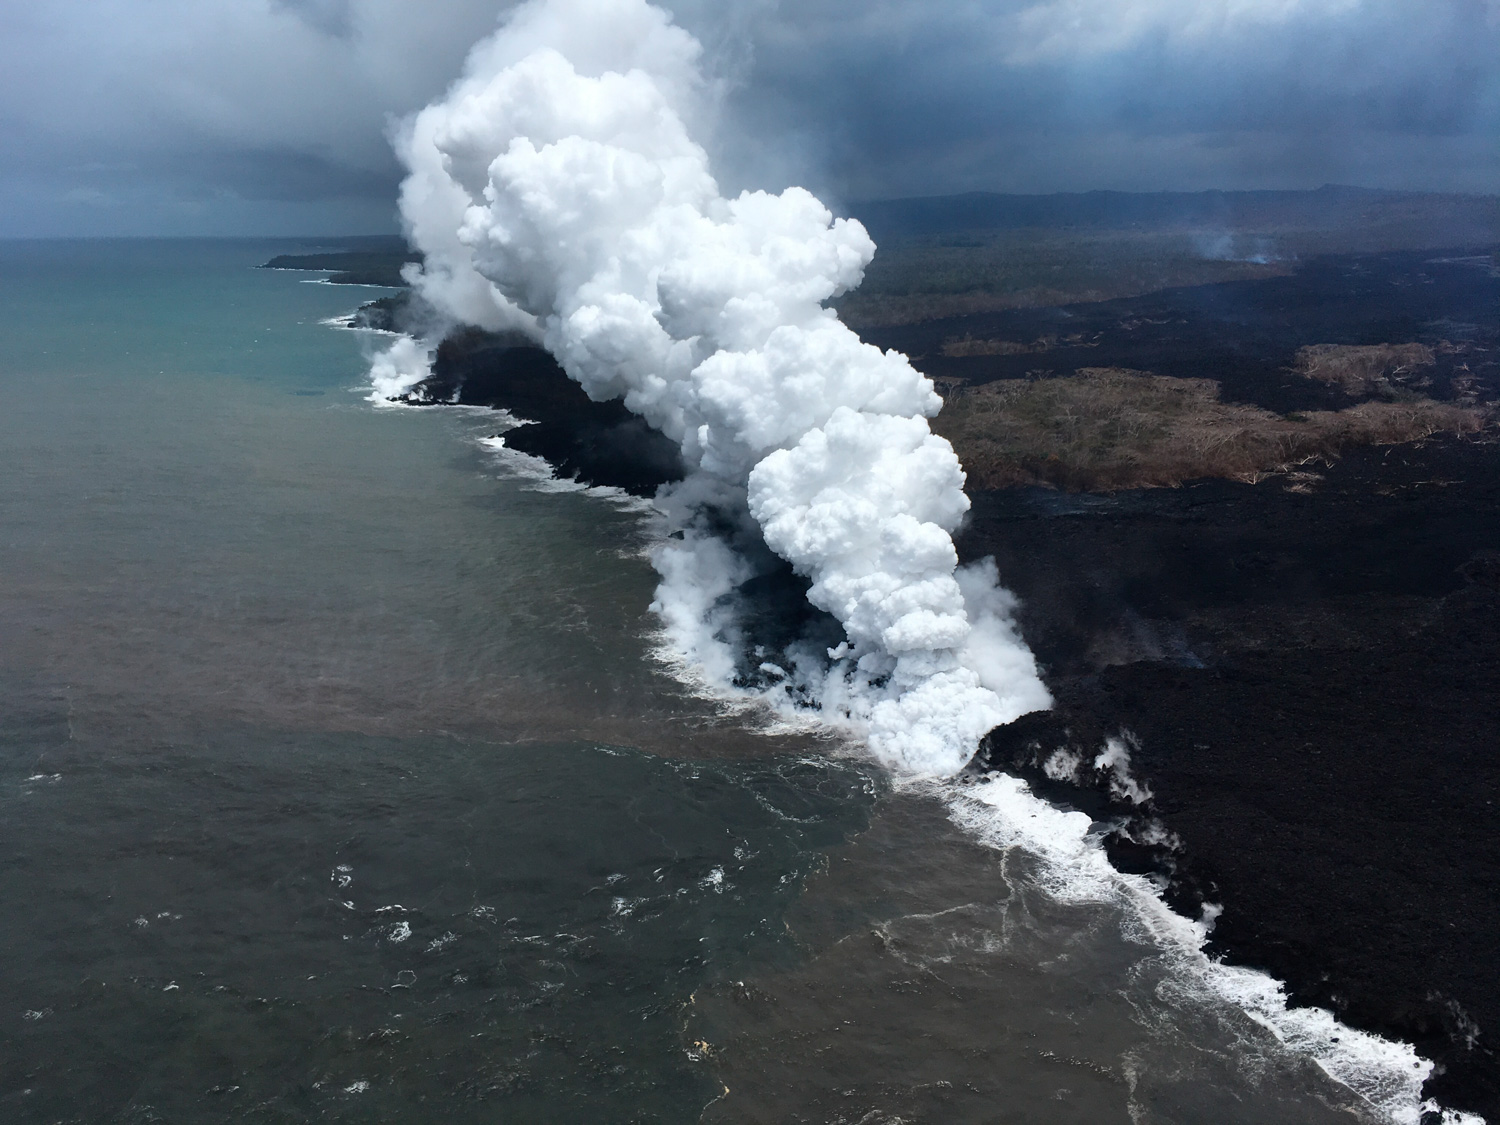 <div class='meta'><div class='origin-logo' data-origin='none'></div><span class='caption-text' data-credit='U.S. Geological Survey via AP'>Lava sends up clouds of steam and toxic gases as it enters the Pacific Ocean as Kilauea Volcano continues its eruption cycle near Pahoa on the island of Kilauea, Hawaii.</span></div>